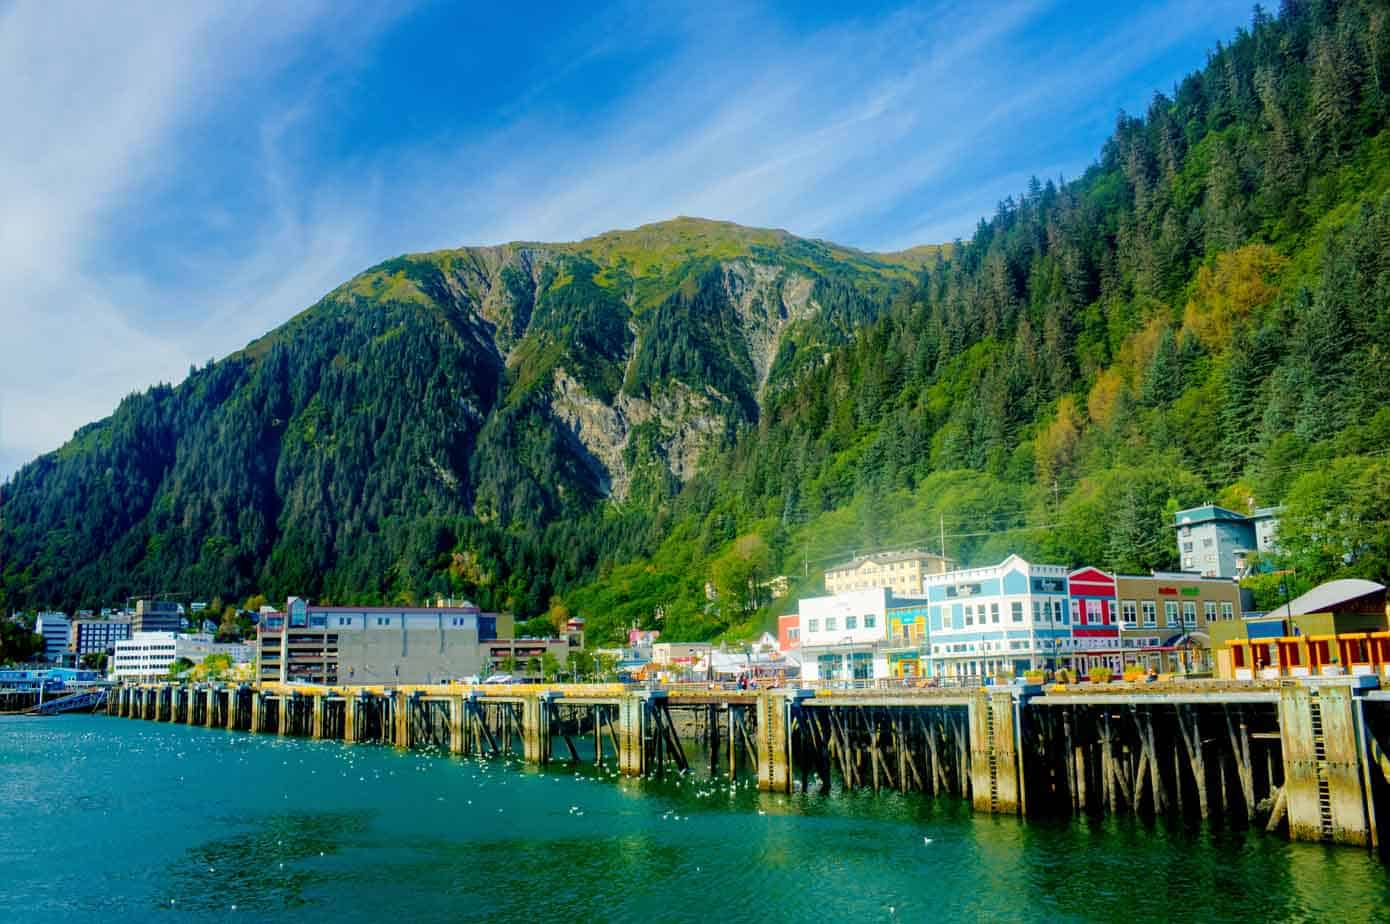 Dock on the ocean with lush mountains in background.